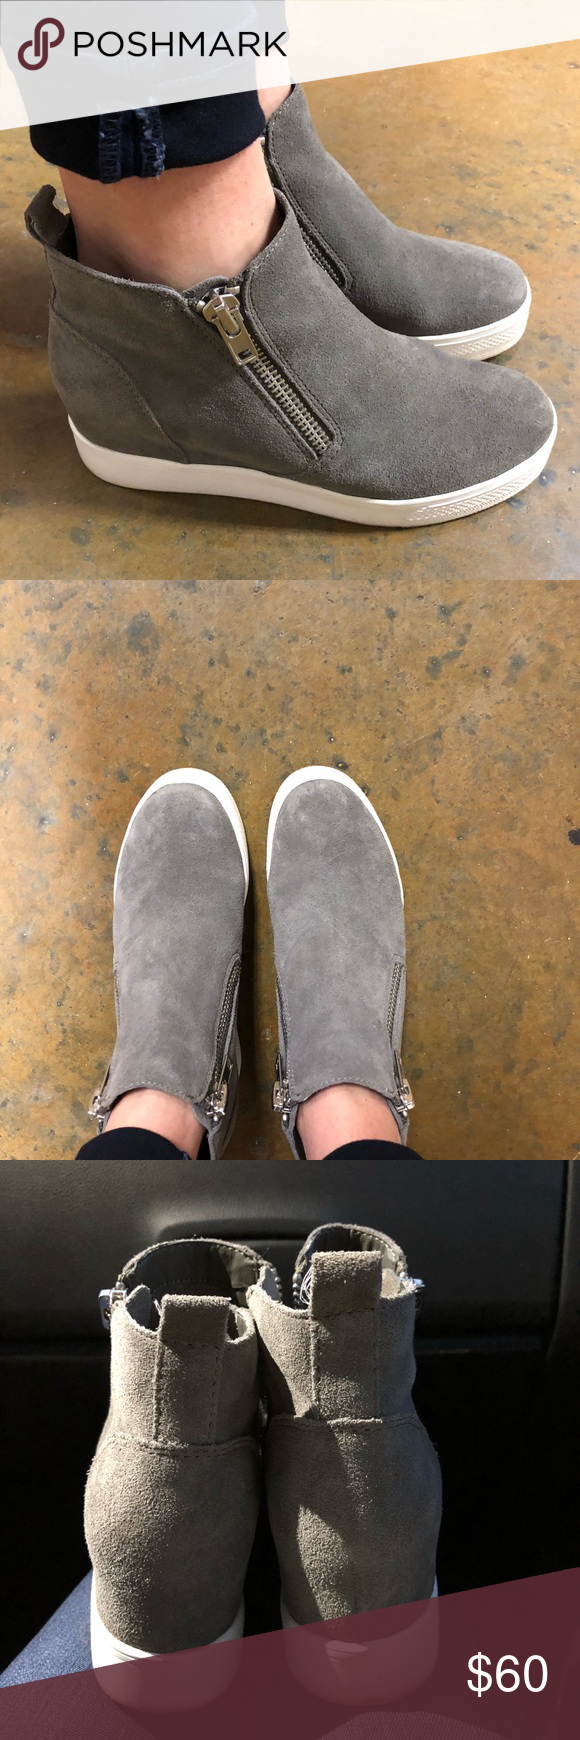 789011cea51 Steve Madden Wedgie Grey suede. Super cute and in excellent condition. Worn  a very few times. Steve Madden Shoes Wedges